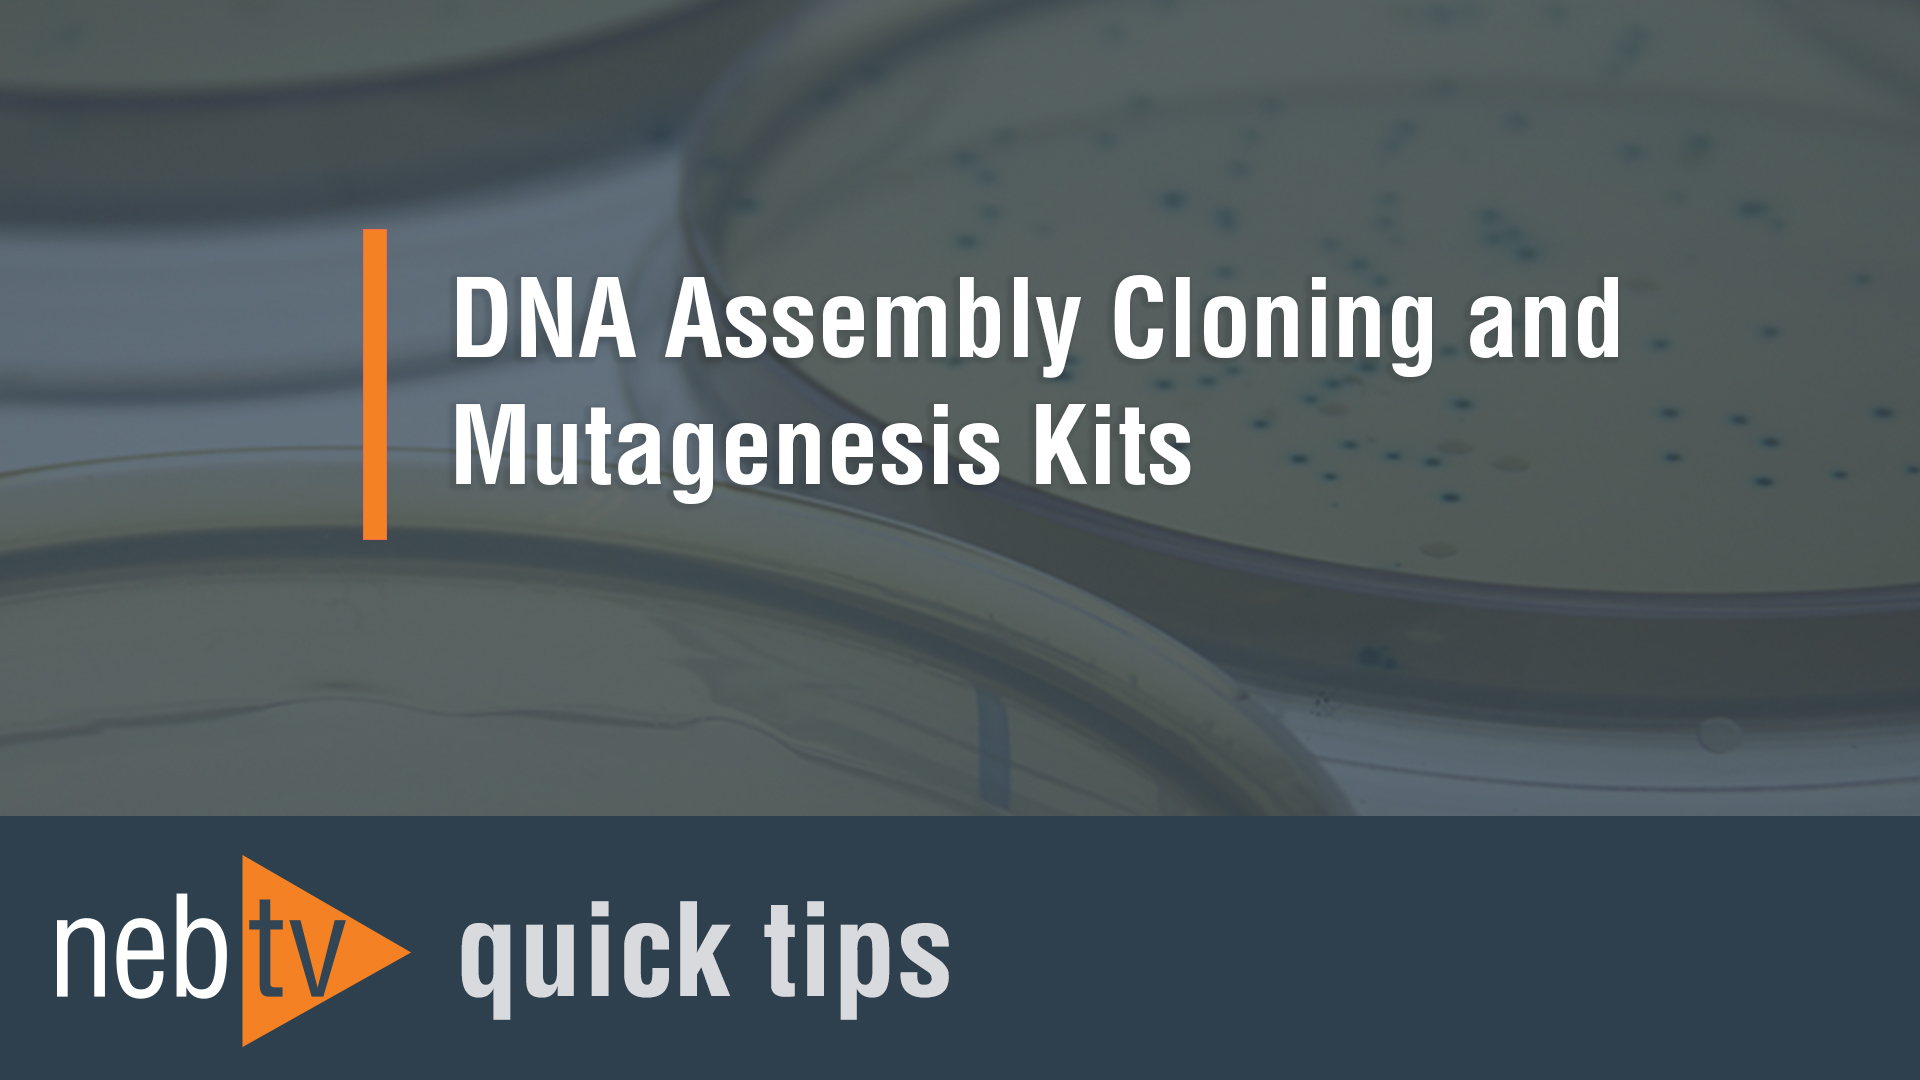 NEBTV_DNA-Assembly-Cloning-and-Mutagenesis-Kits_1920